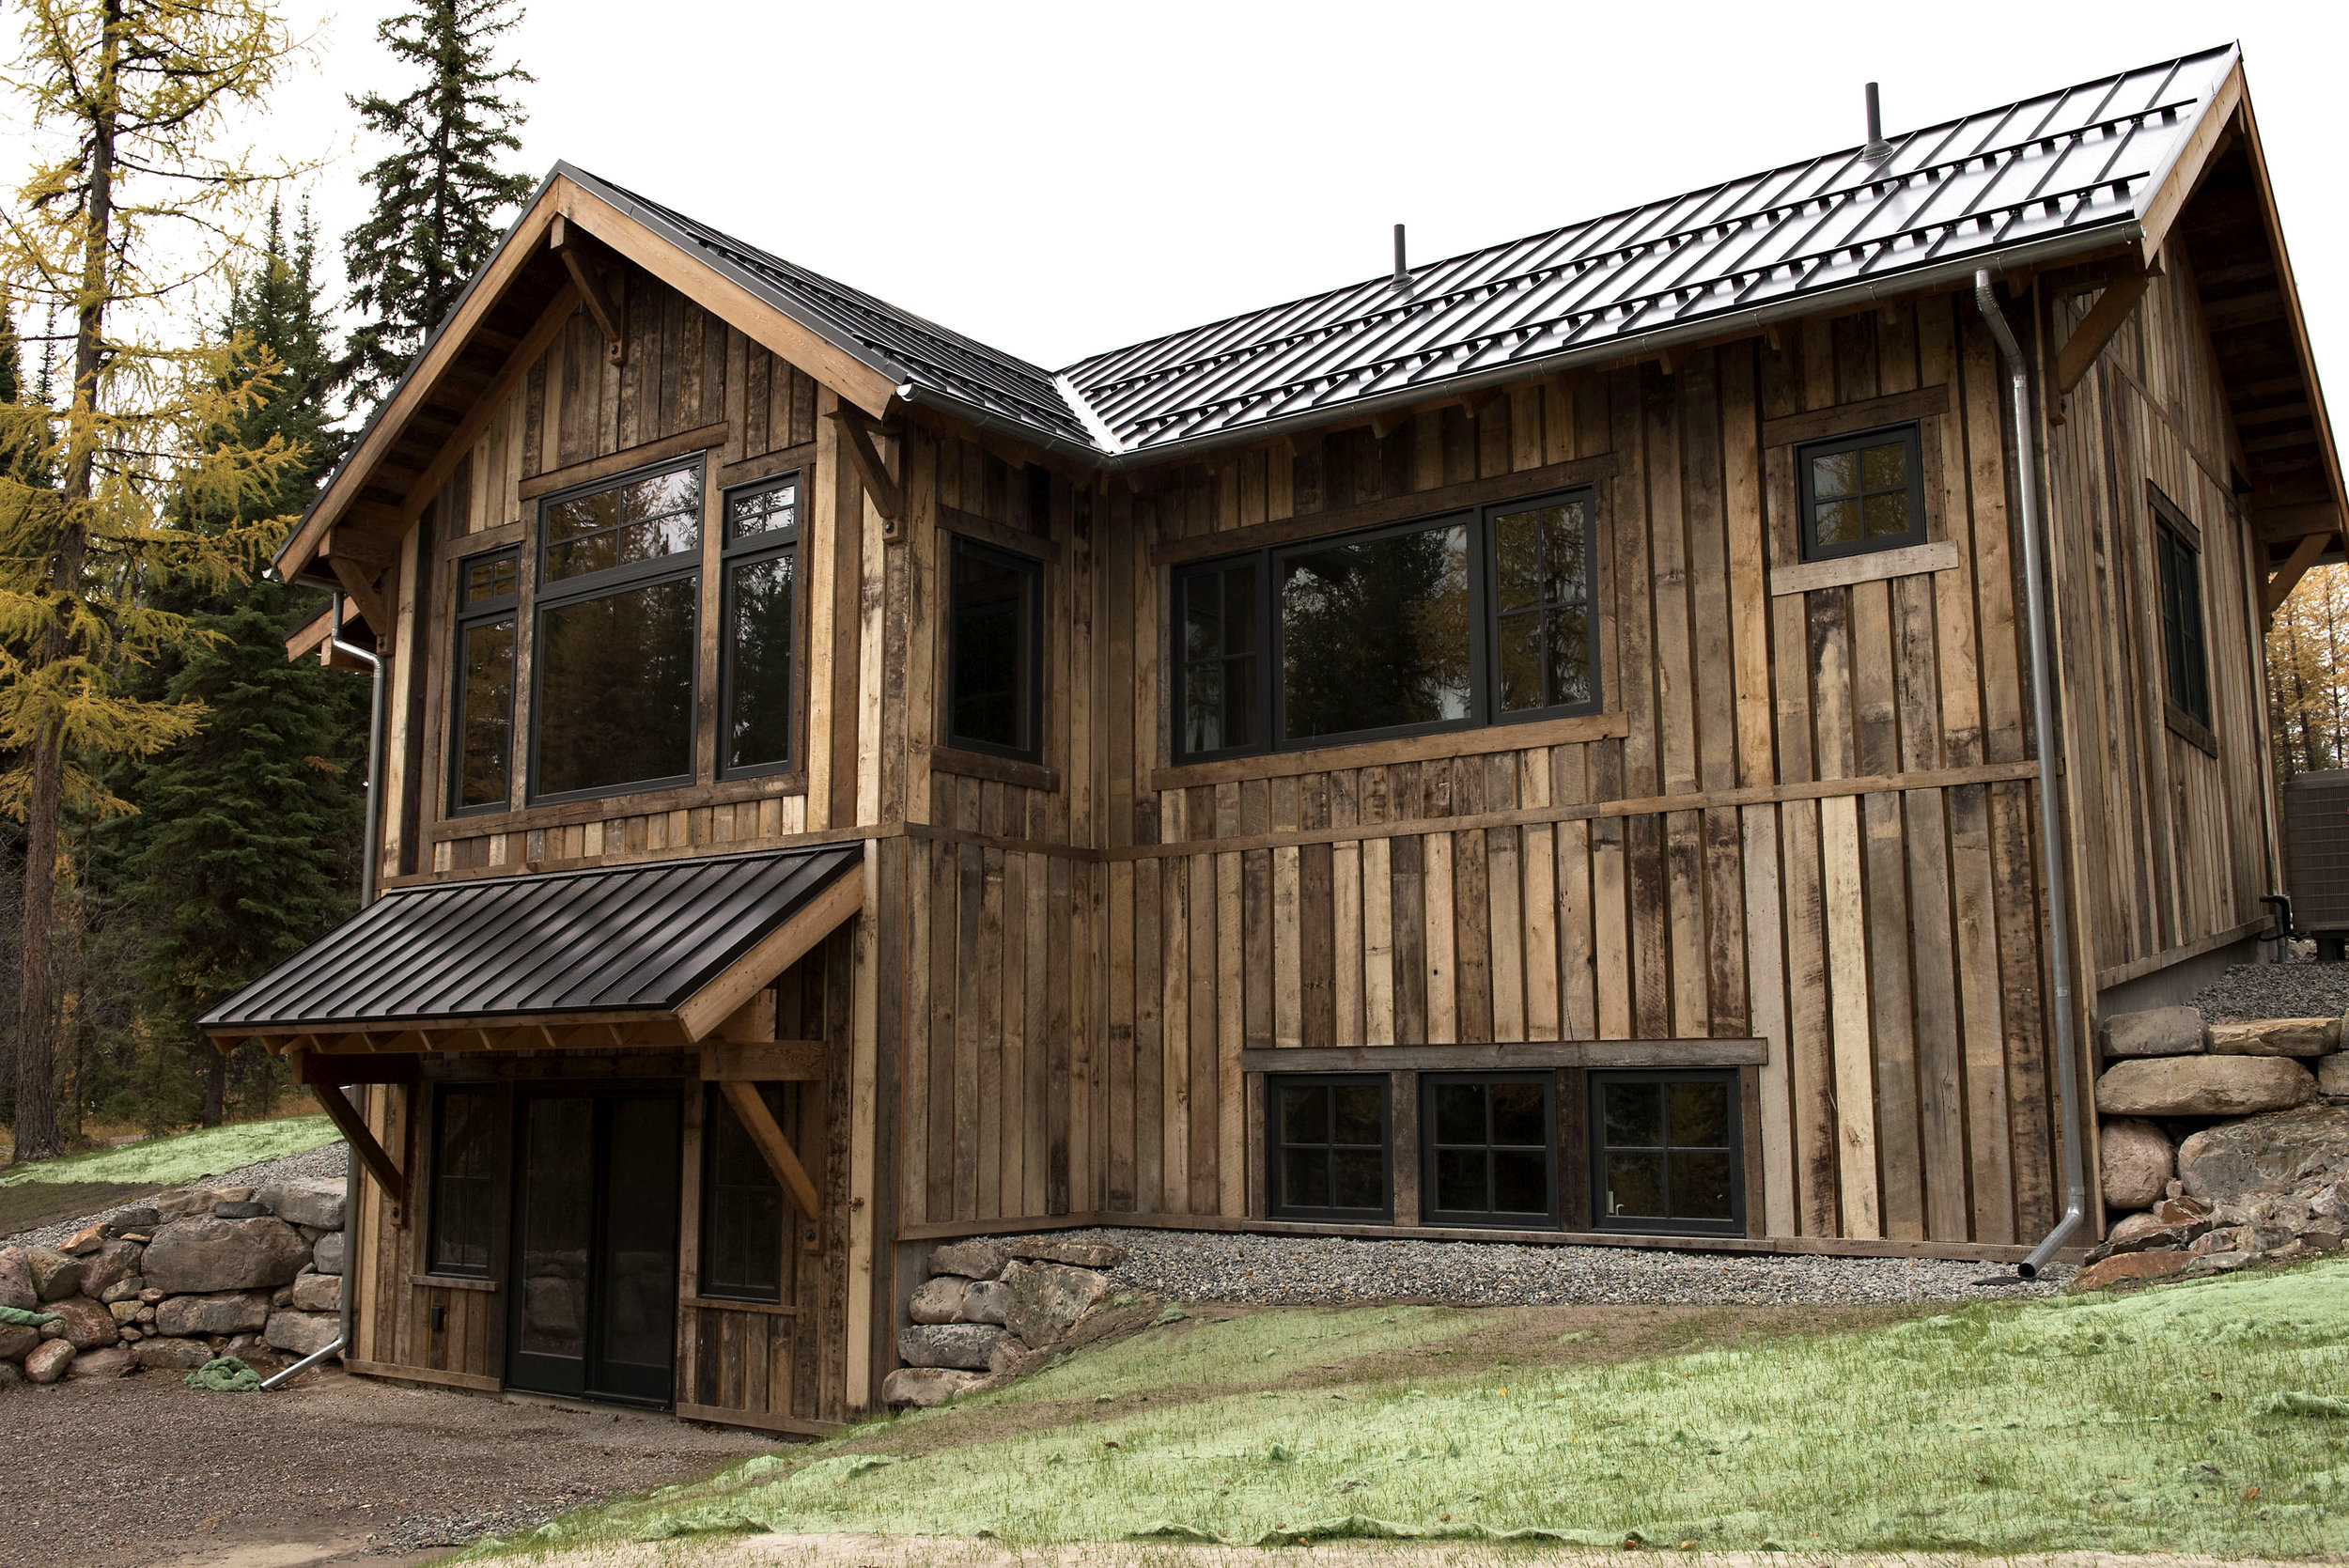 A lakeside view of the cabin reveals the reclaimed exterior window trim and metal roofing. Reclaimed window and floor trim was used throughout the interior of the home as well.